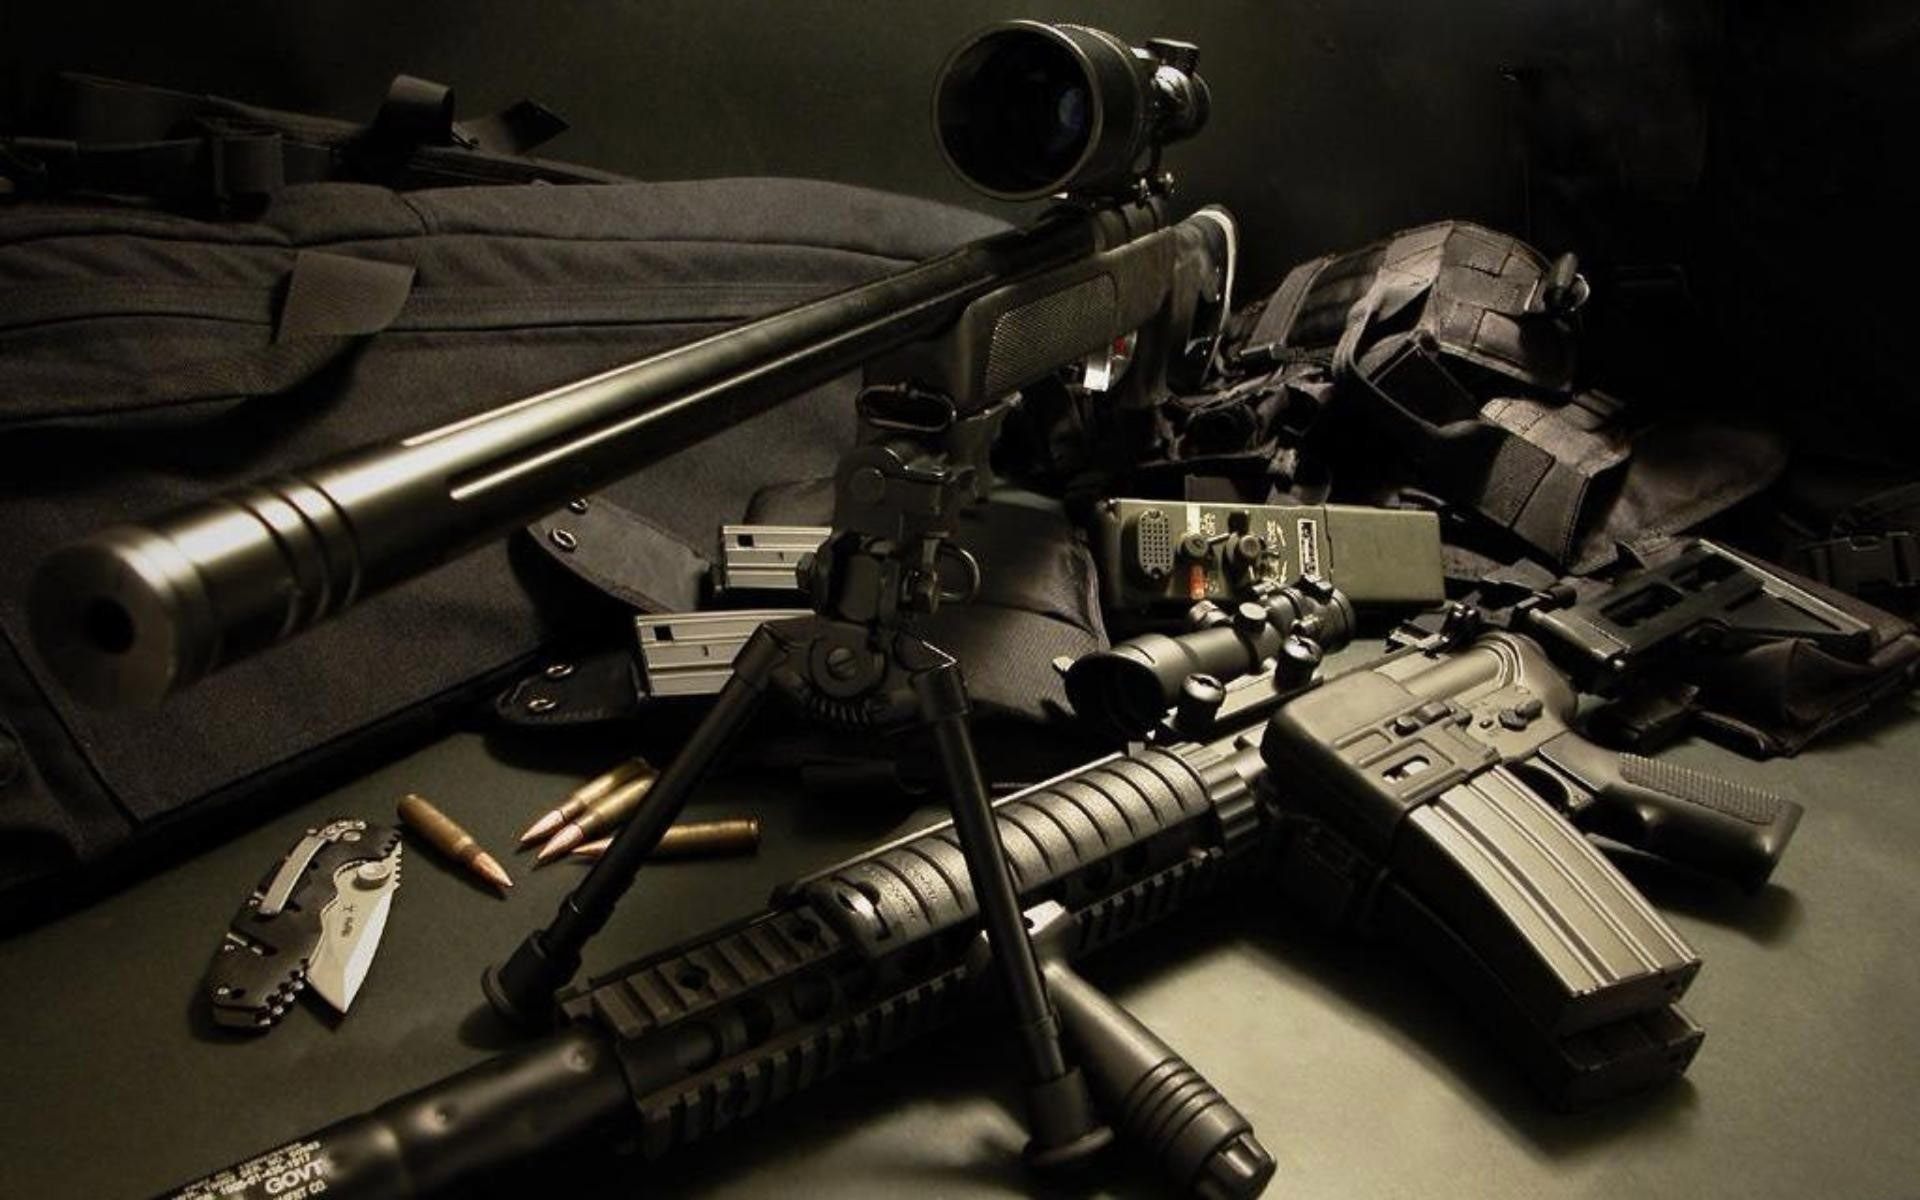 Sniper gun collection hd wallpaper hd latest wallpapers sniper gun collection hd wallpaper voltagebd Choice Image